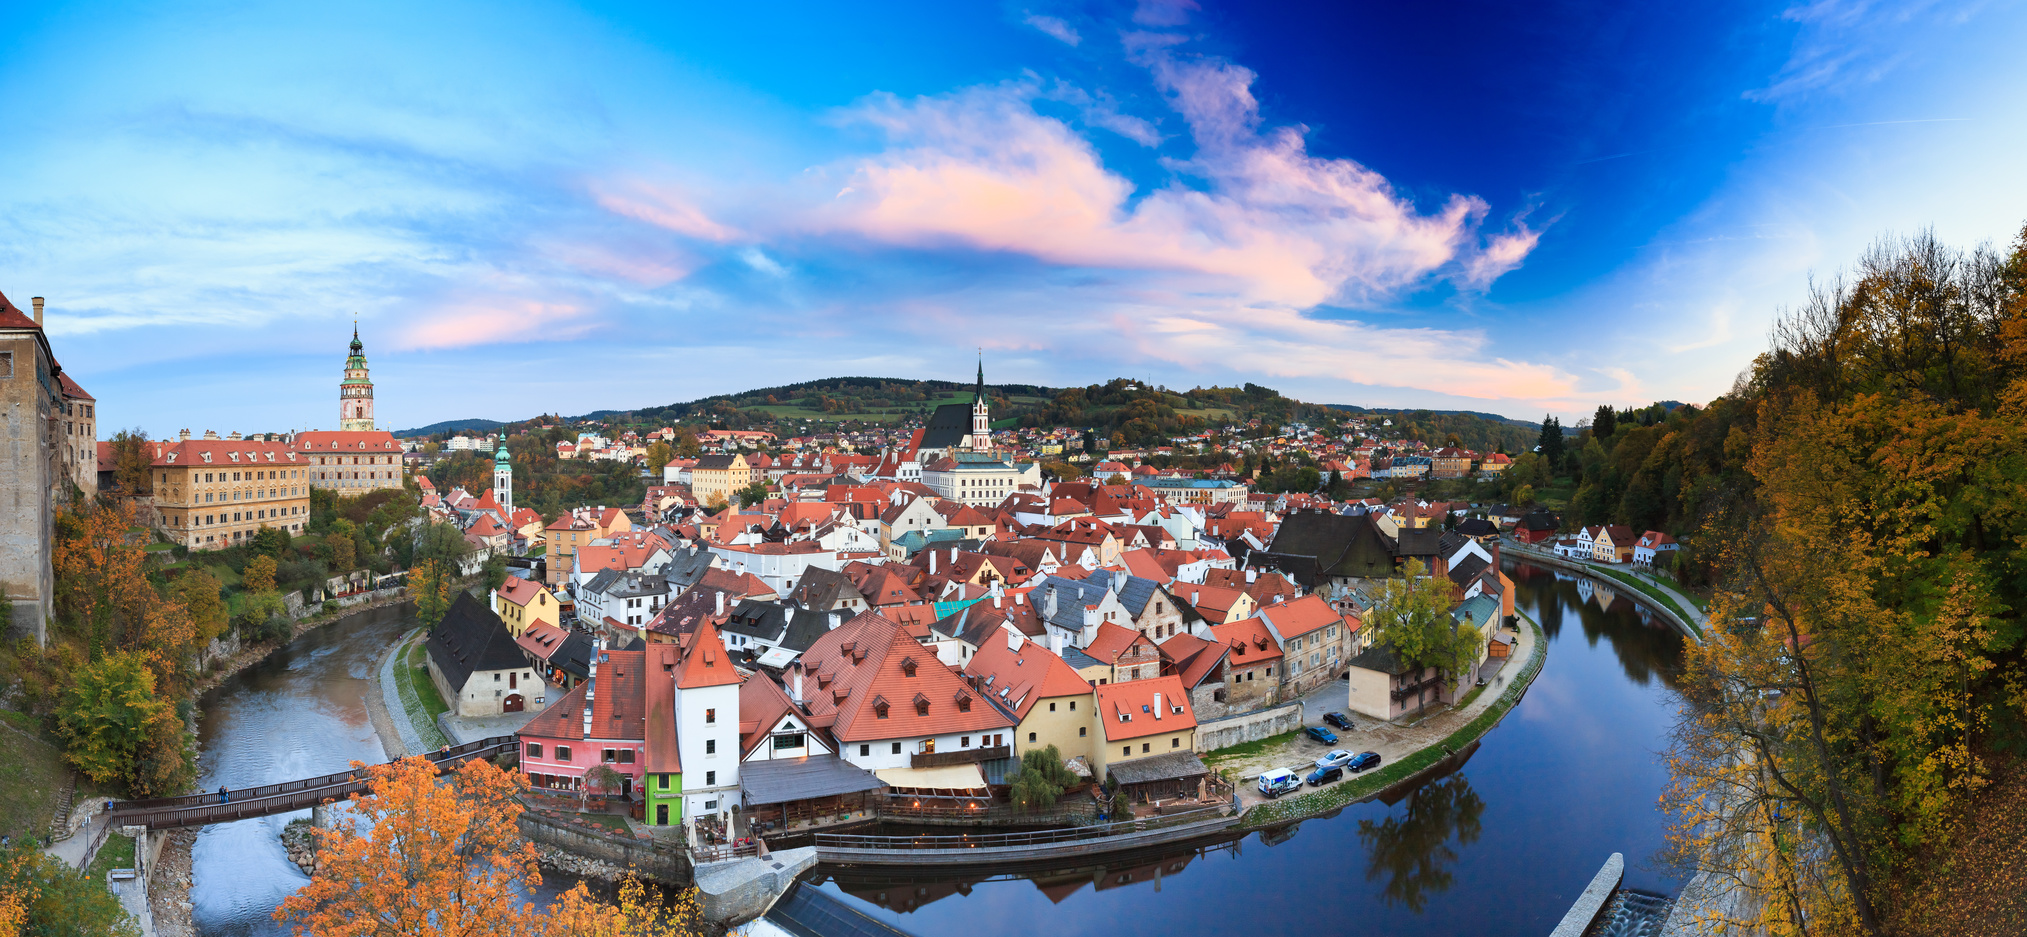 Panorama cityscape Cesky Krumlov, Czech republic. Autumn evening. UNESCO World Heritage Site